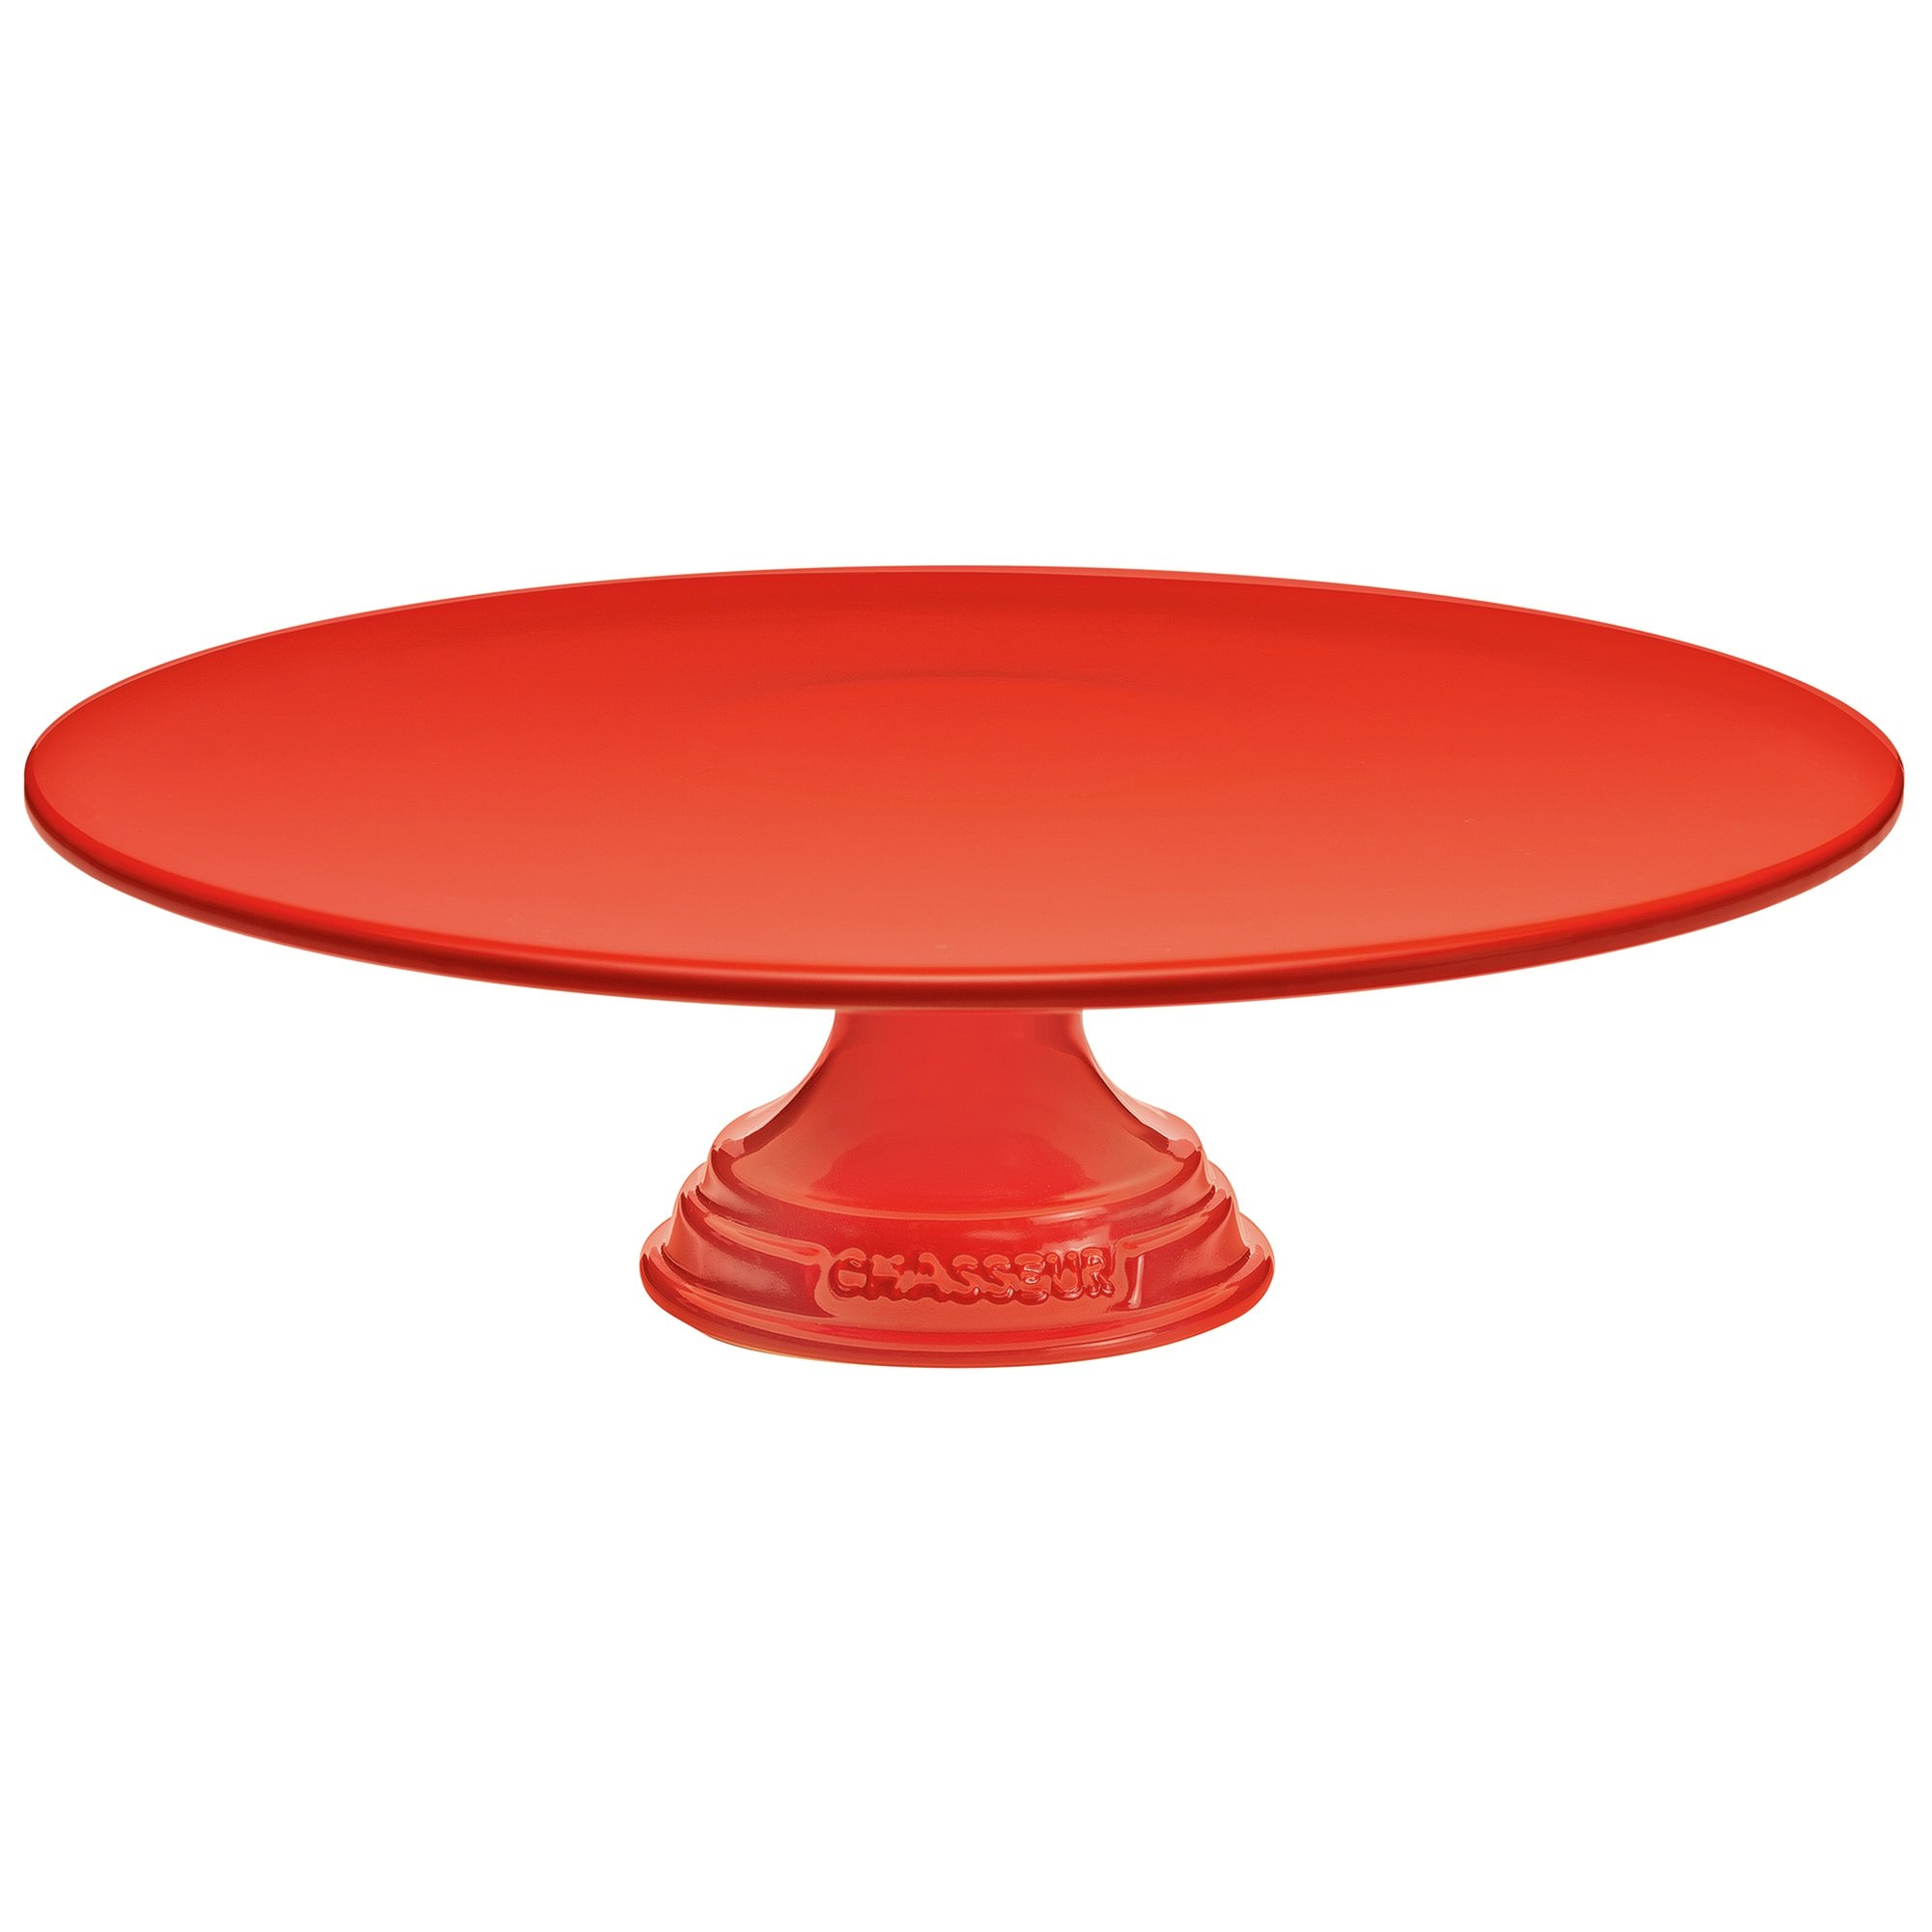 Chasseur La Cuisson Cake Stand - Red